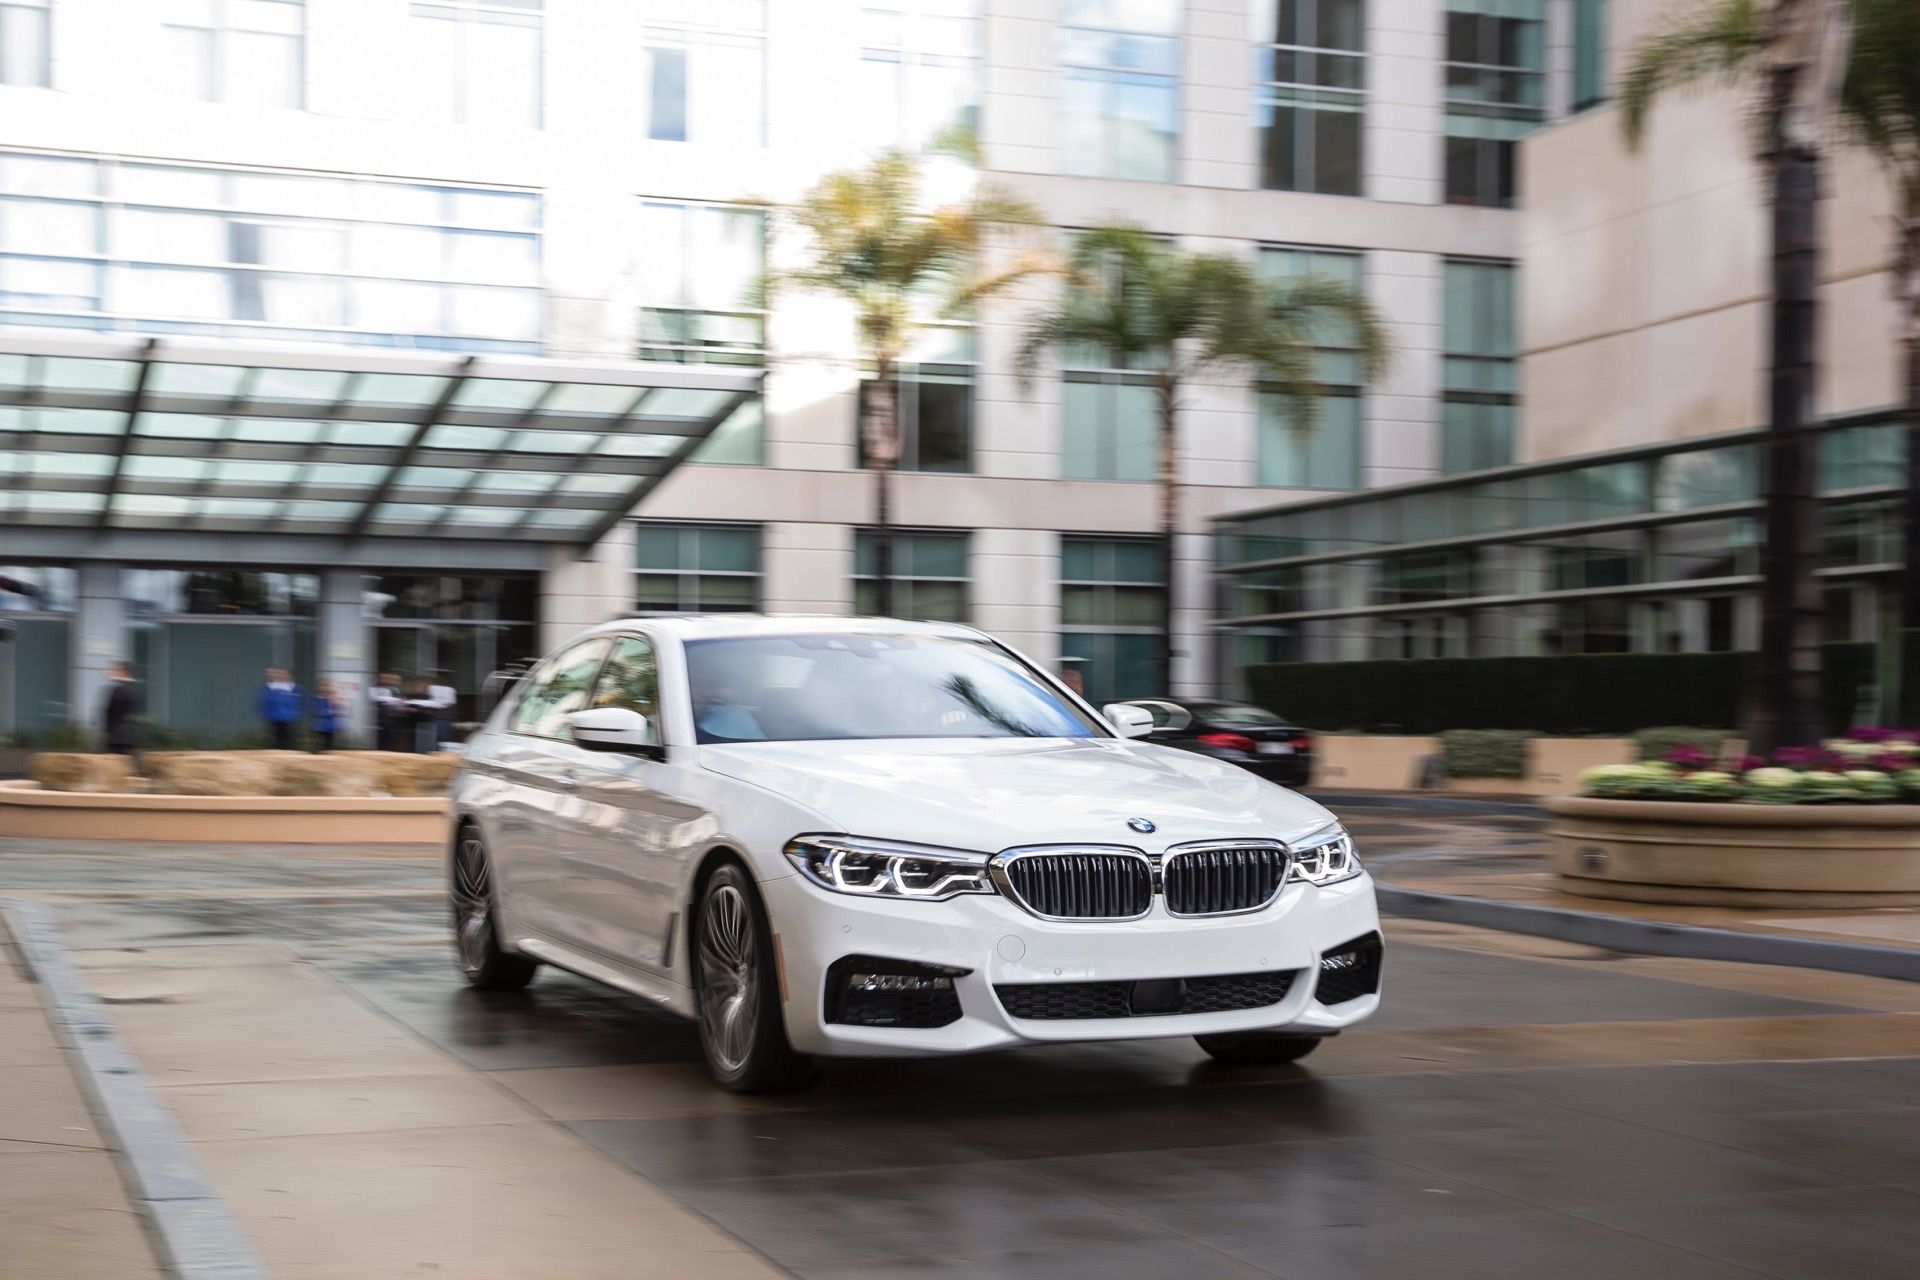 In a recent comparison test by Auto Express, the BMW 5 Series takes on its rivals, the Mercedes-Benz E-Class and the Jaguar XF.